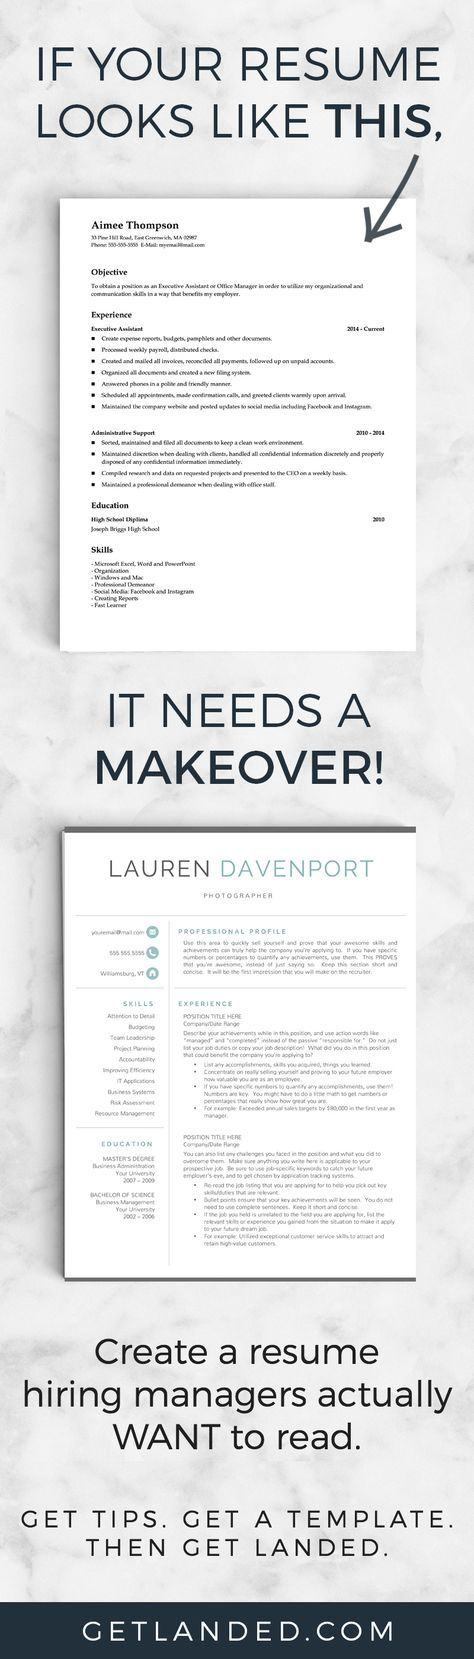 Best 25+ Project manager resume ideas on Pinterest Project - project management resume